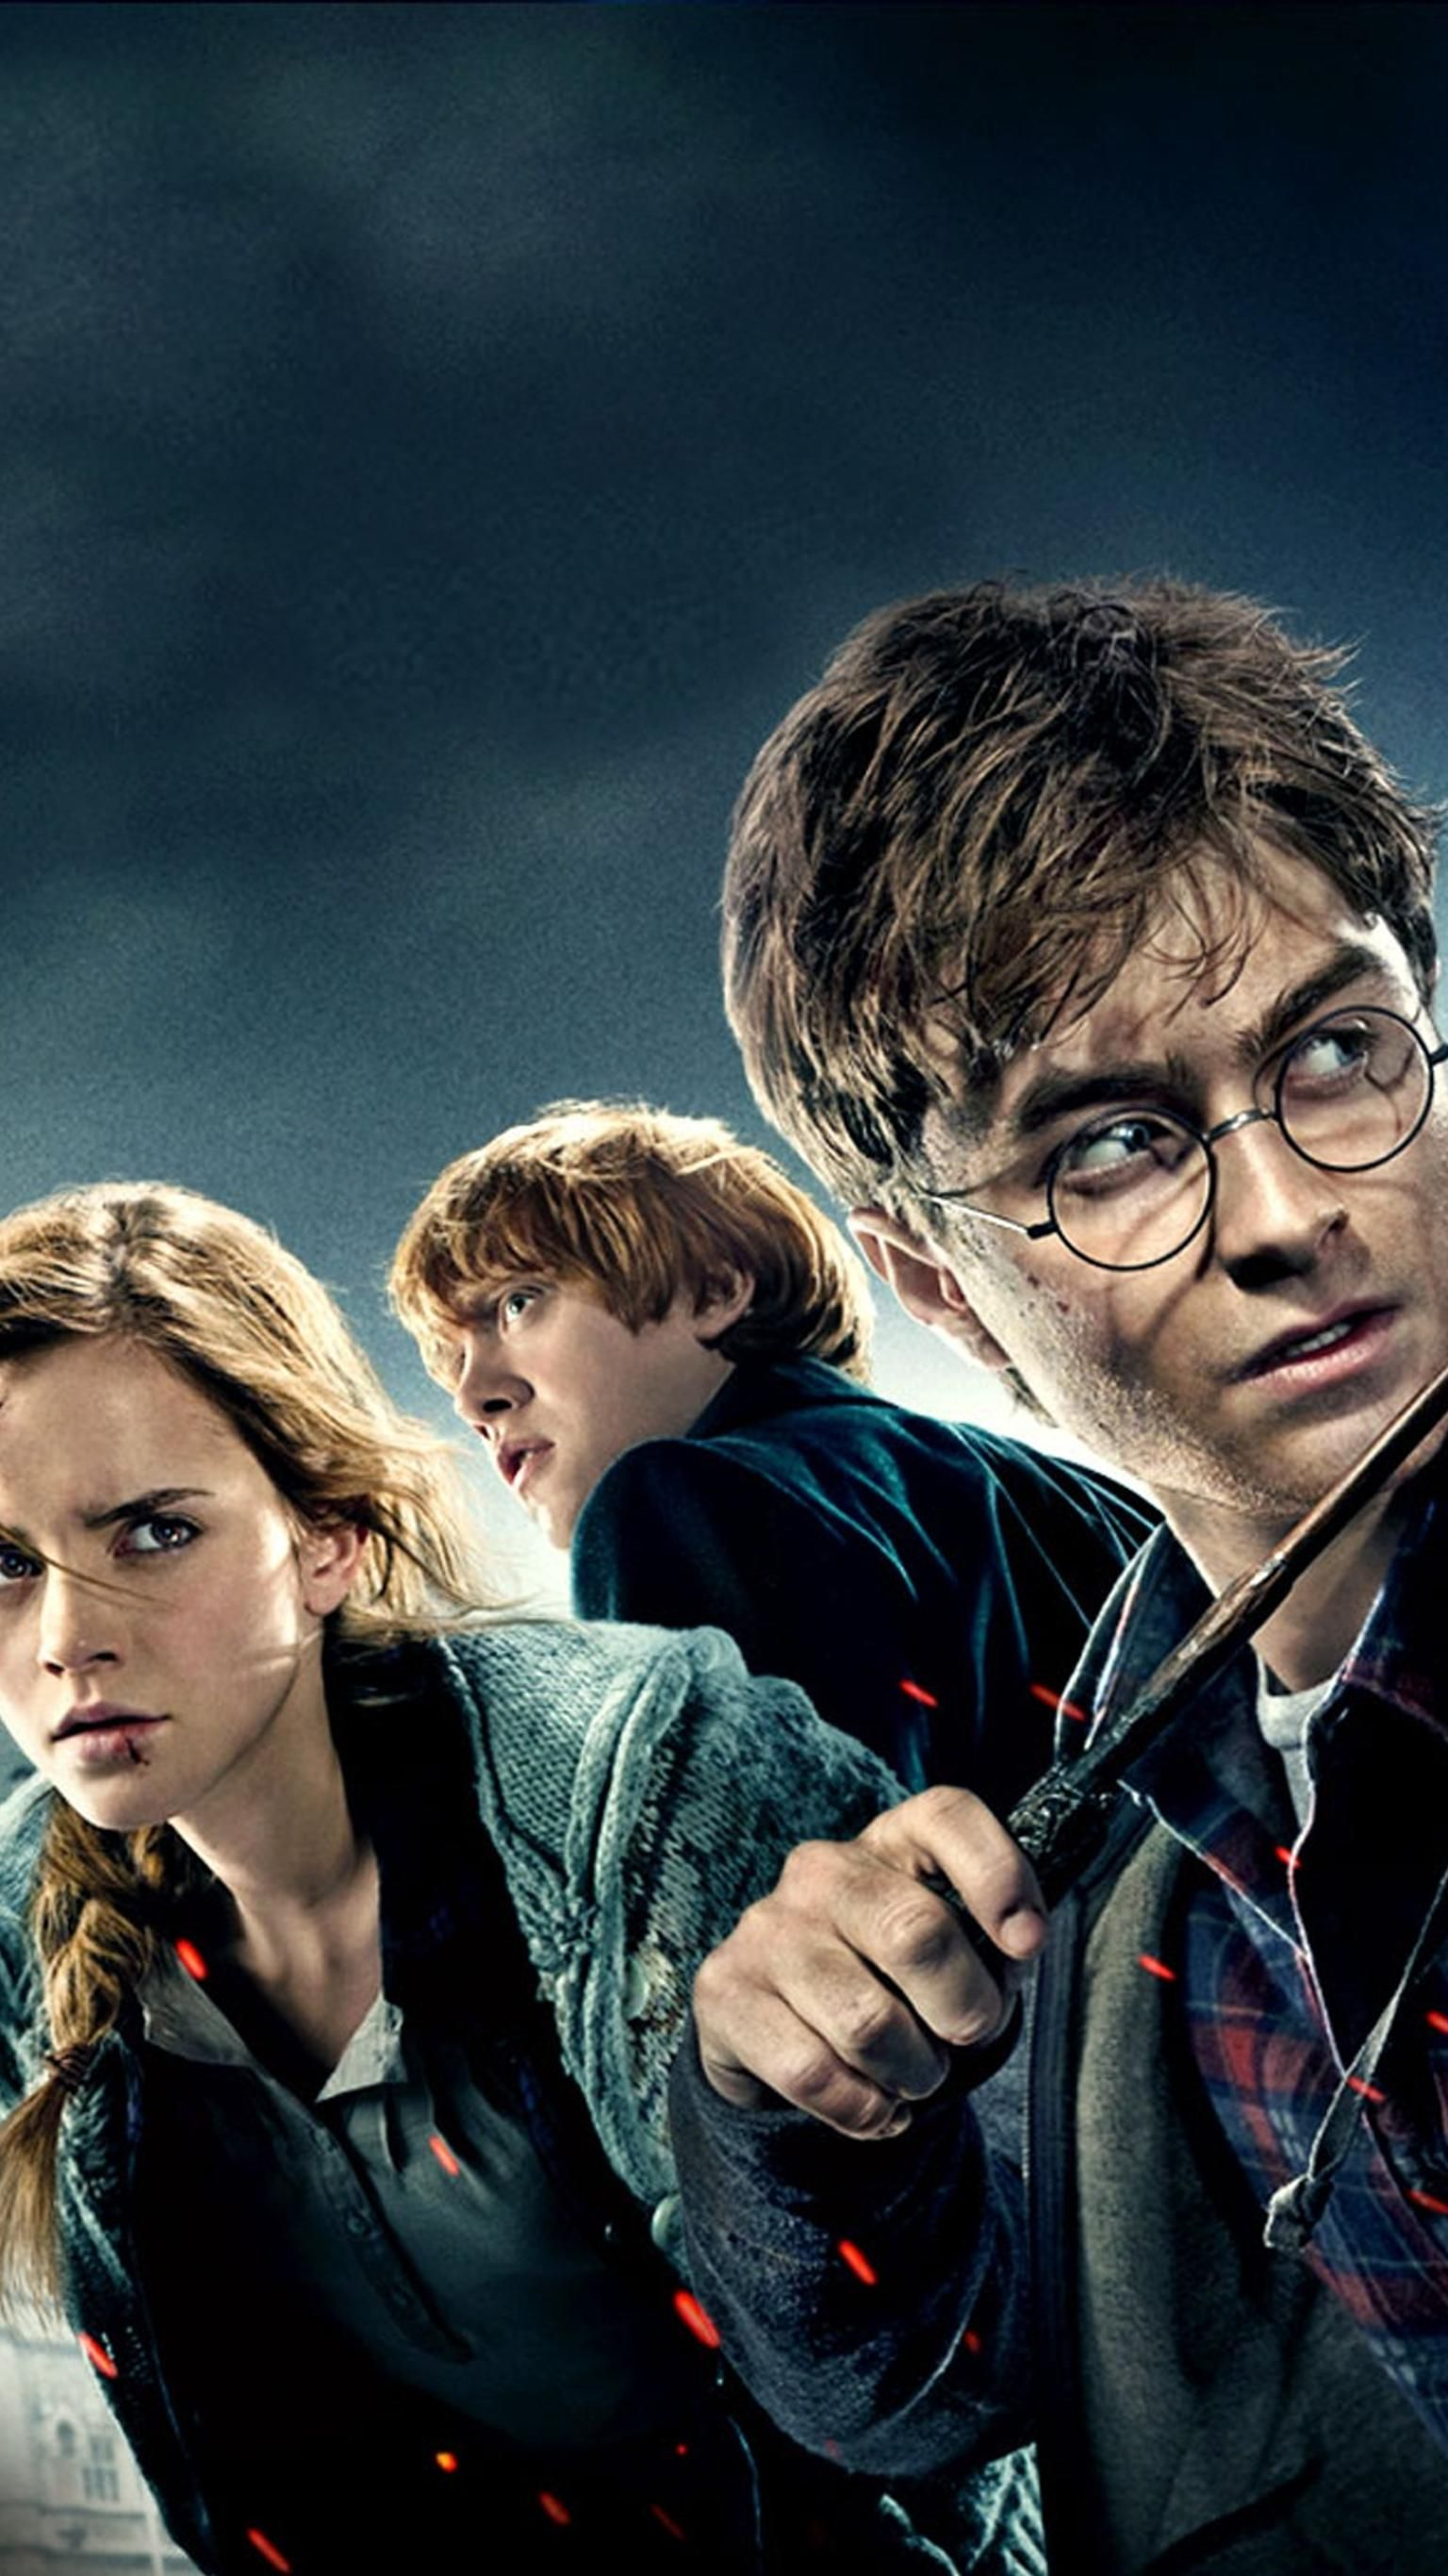 Harry Potter and the Deathly Hallows: Part 1 (2010) Phone Wallpaper   Moviemania